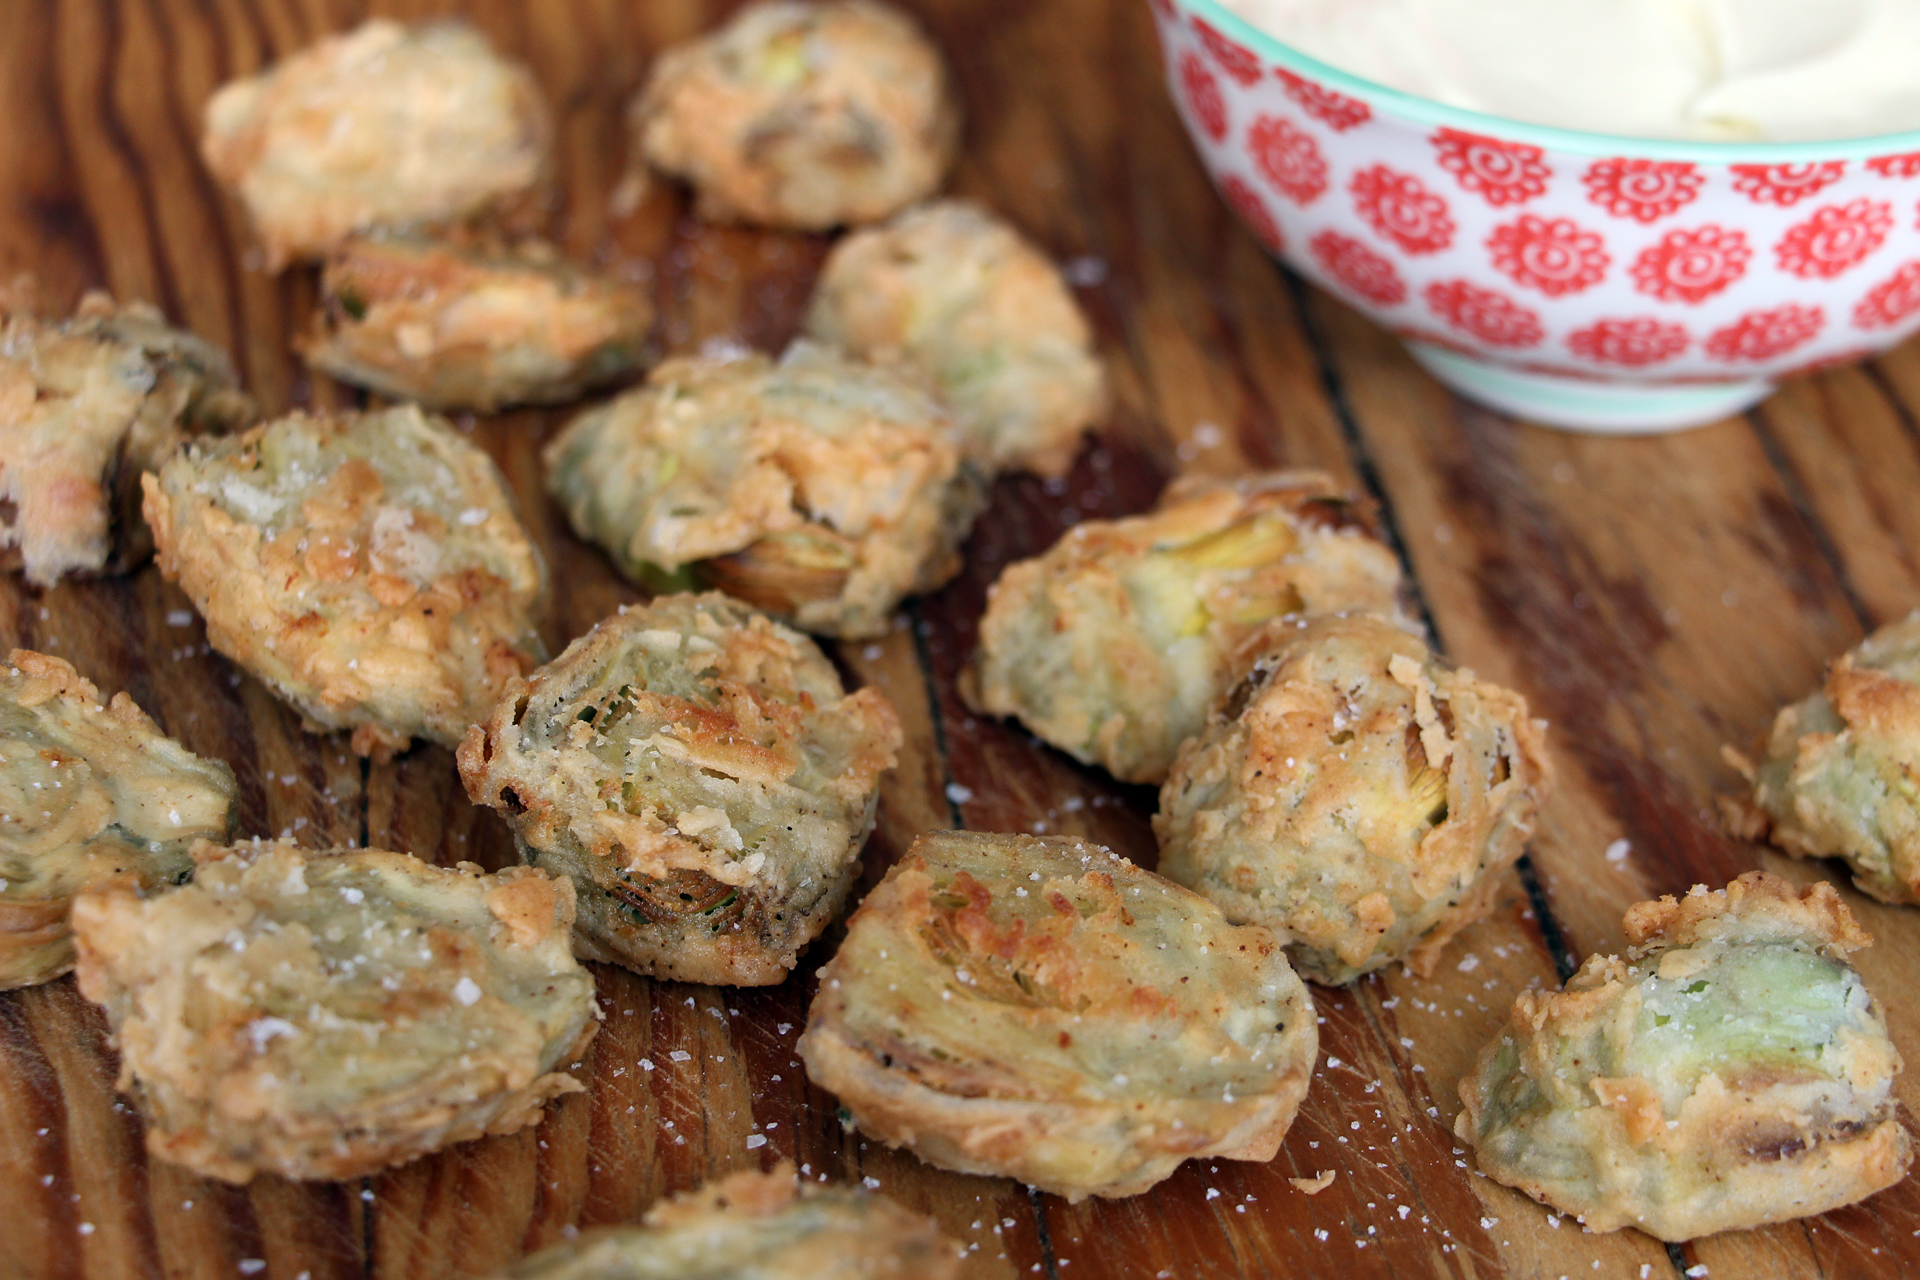 Fried Baby Artichokes with Homemade Meyer Lemon Mayo